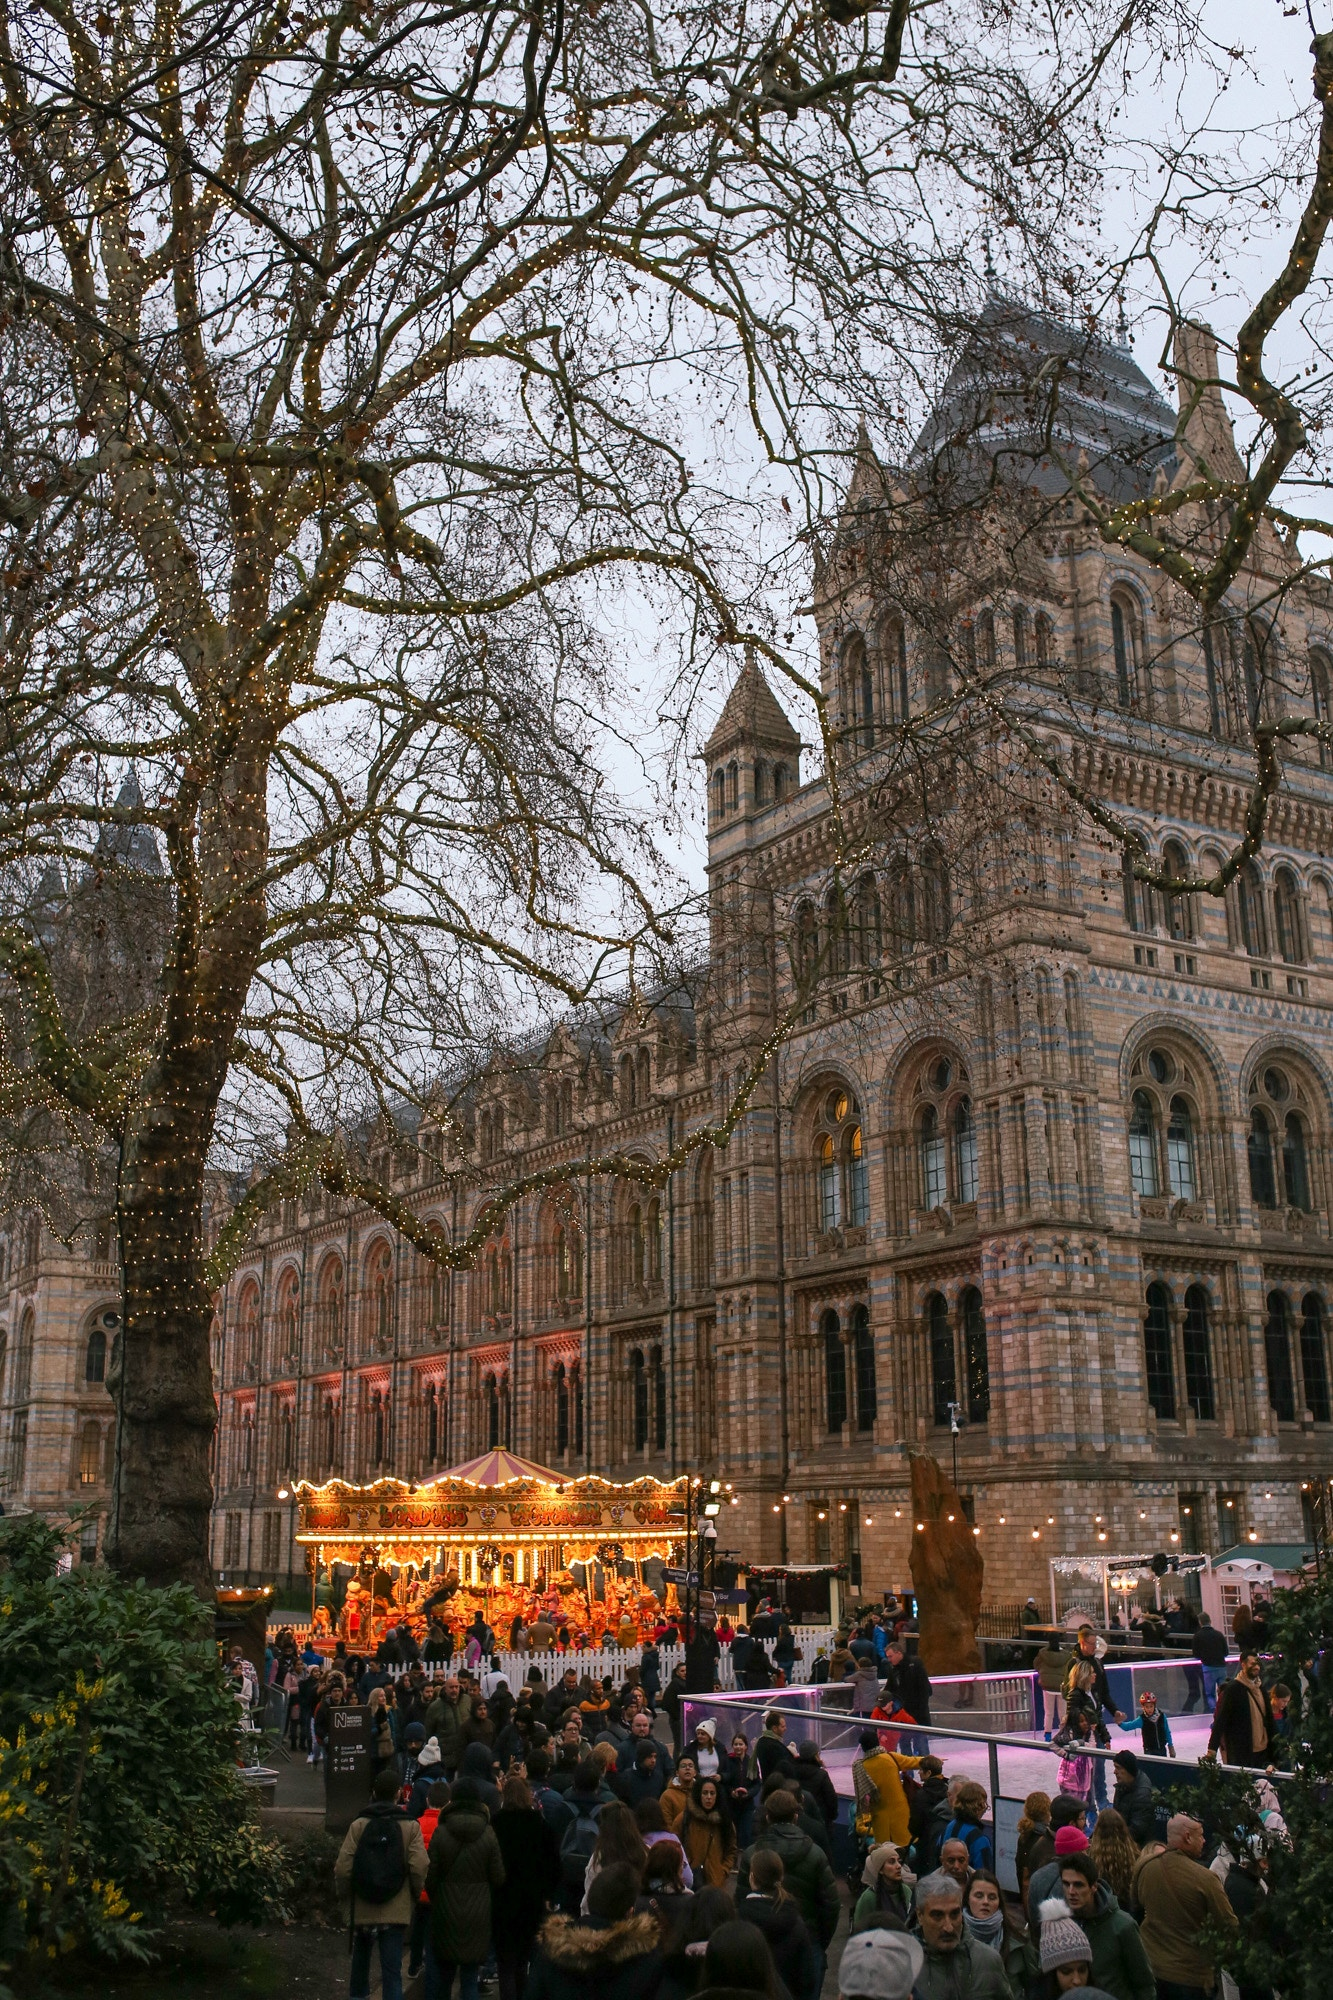 The Natural History Museum in London is a must-see at Christmas time with a carousel, skating rink and fairy lights.